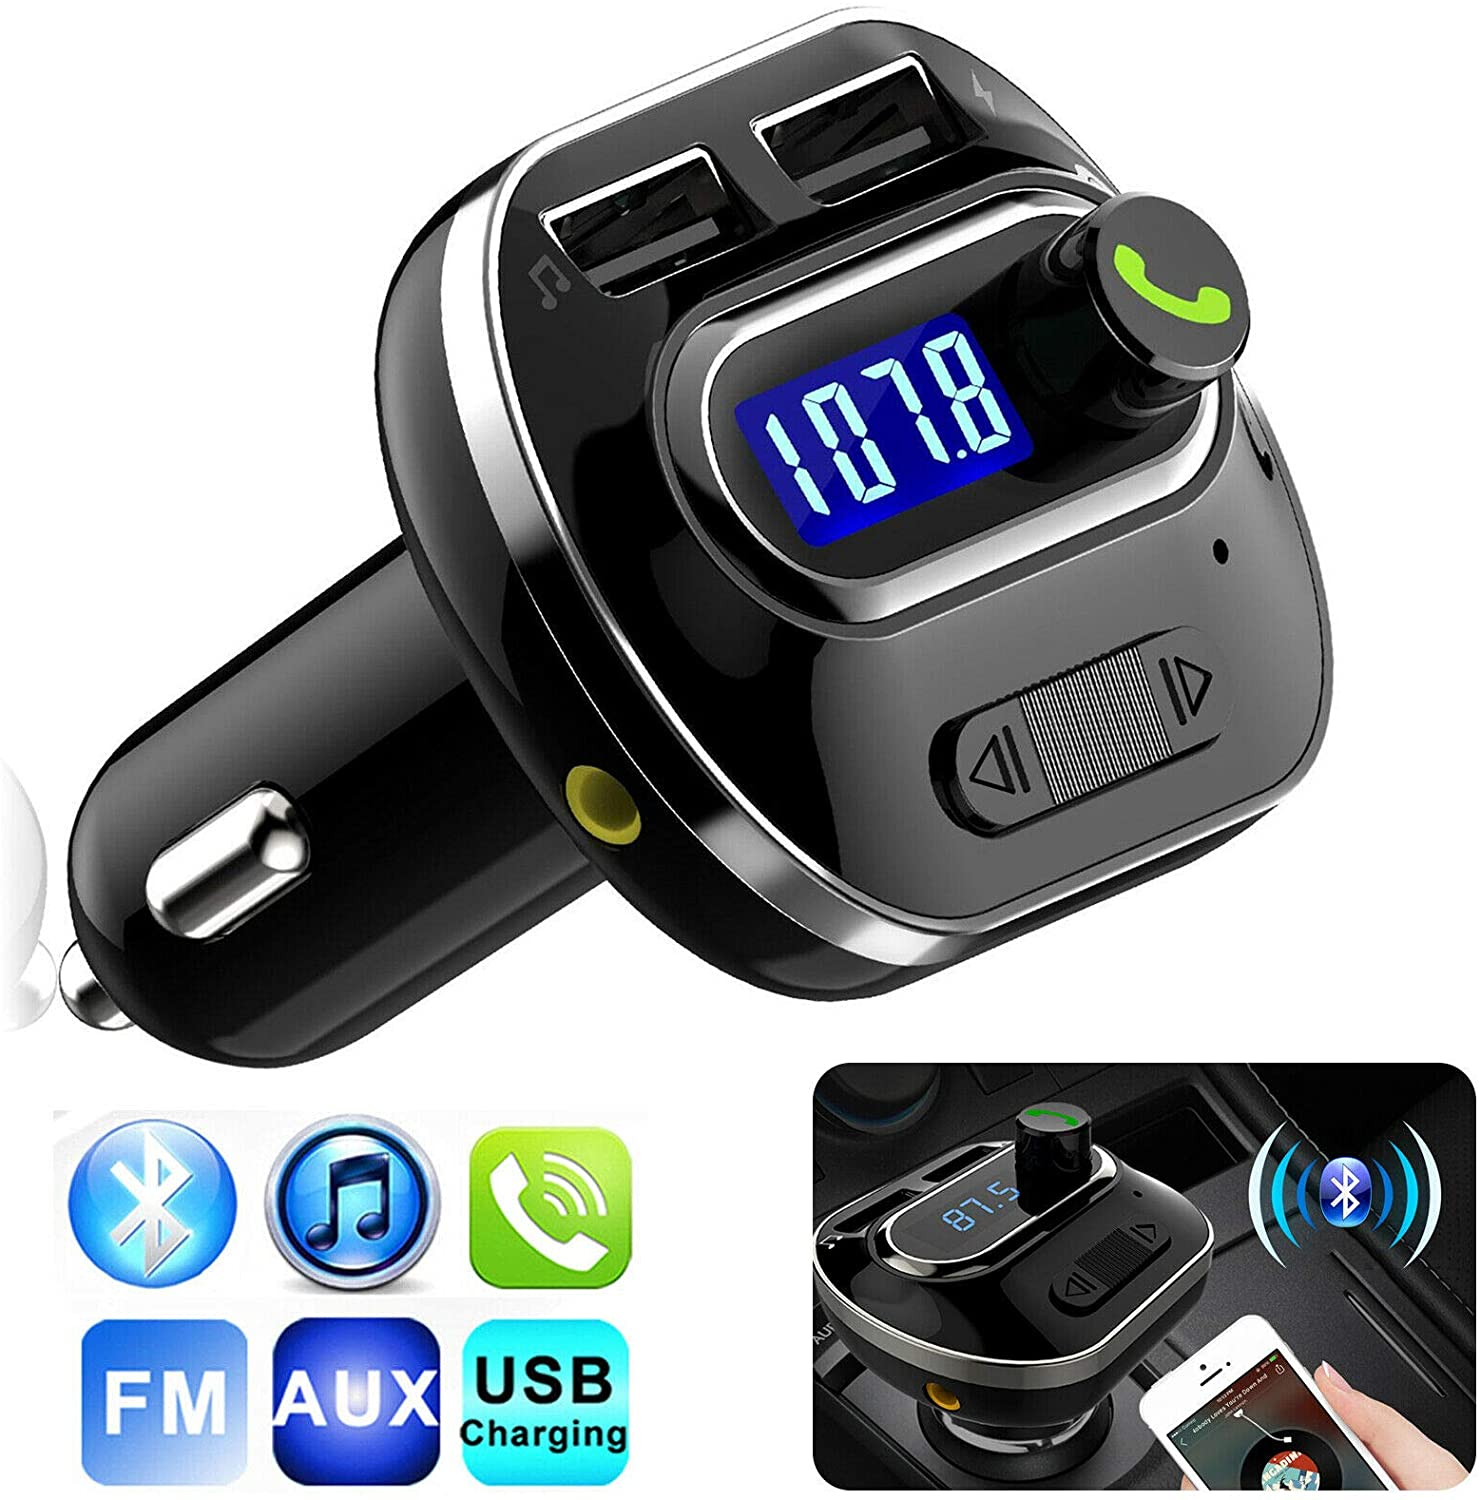 AKDSteel Blue-Tooth Wireless Car AUX Stereo Audio Receiver FM Radio Adapter USB Charger for CE Accessories